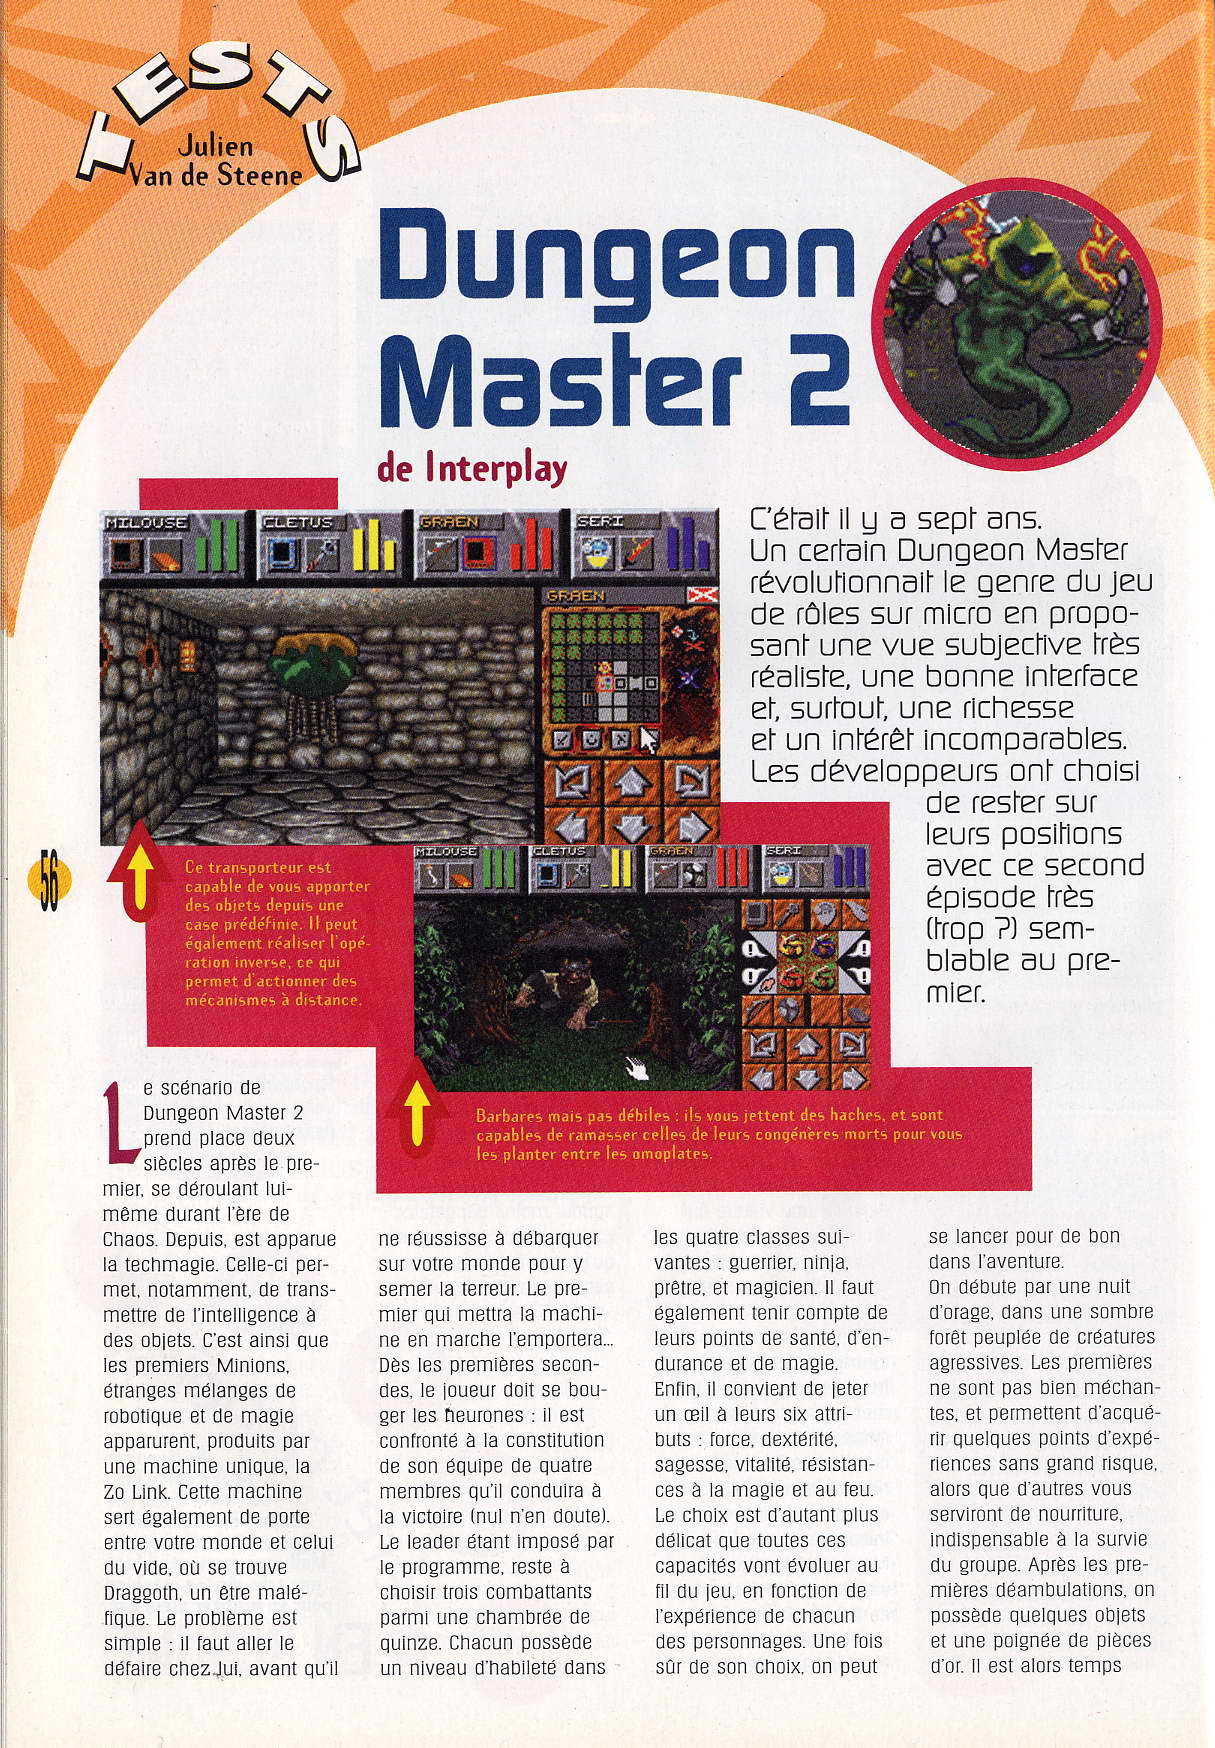 Dungeon Master II for PC Review published in French magazine 'Multimedia PC Player', Issue #24 September 1995, Page 56